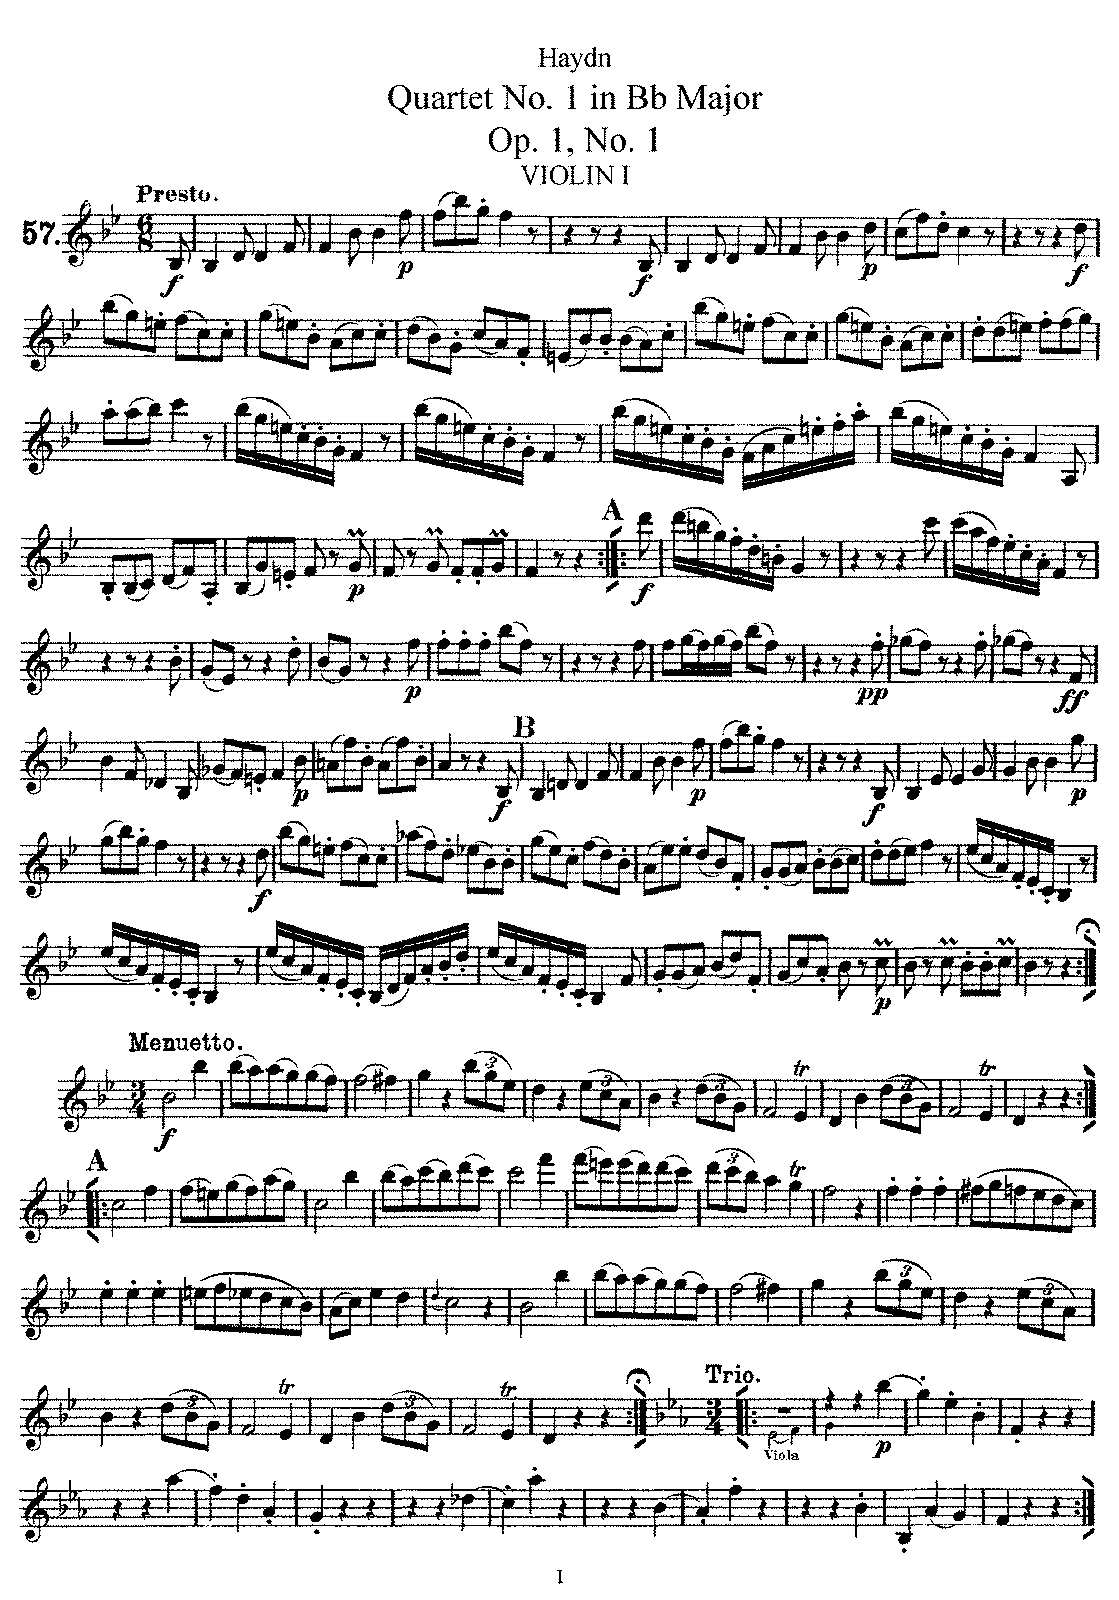 PMLP143602-Haydn - String Quartet No1 in BbM Op1 No1 violin1.pdf